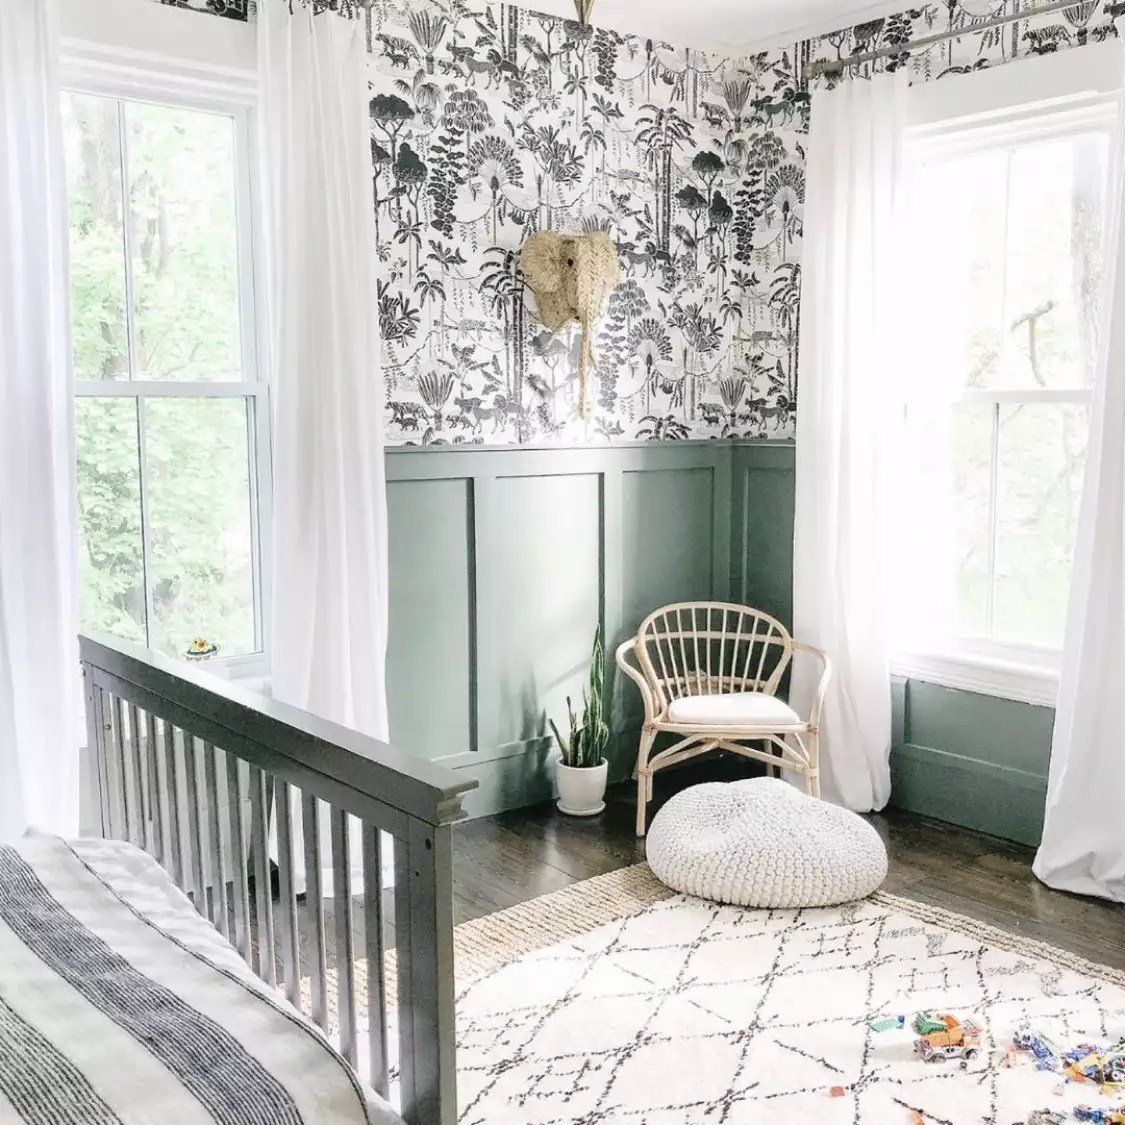 Wallpapered and green bedroom.